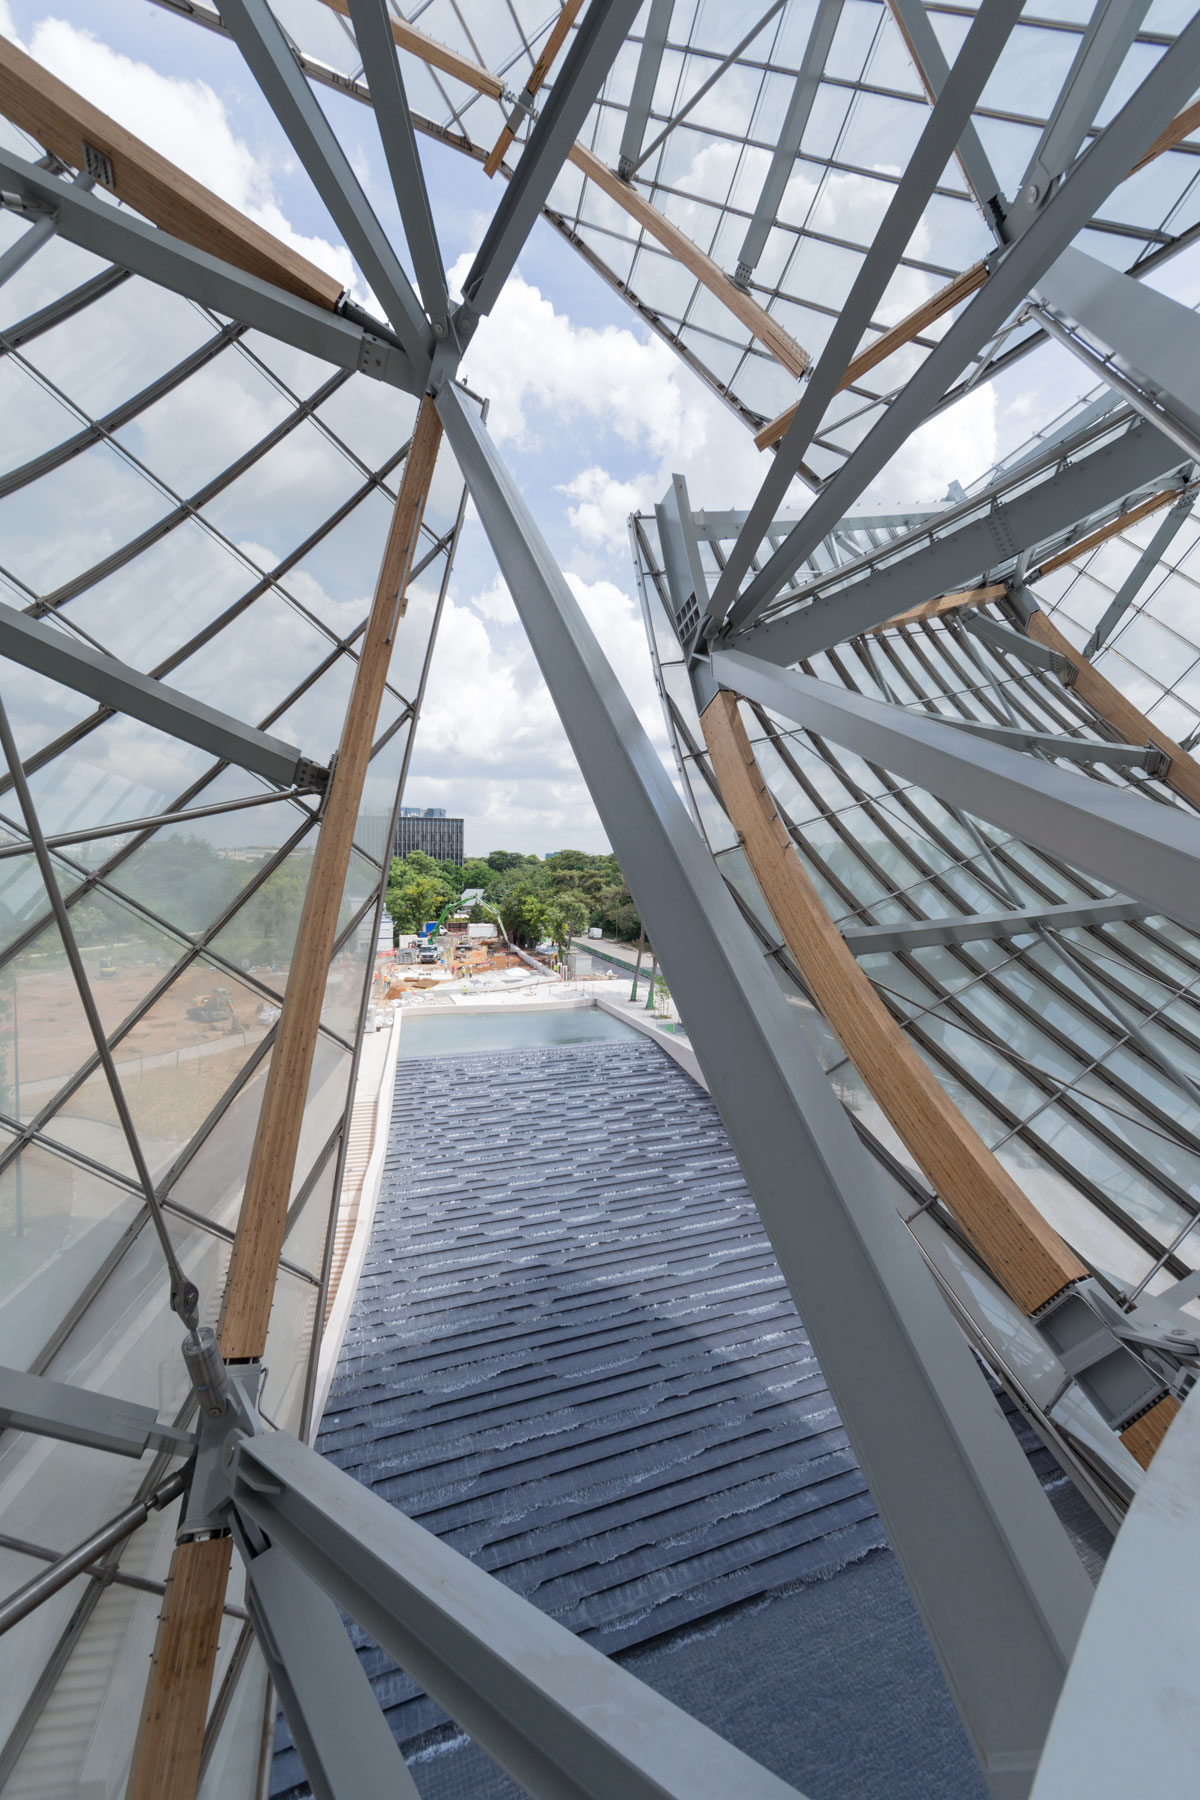 frank gehry 39 s epic louis vuitton foundation opens next week. Black Bedroom Furniture Sets. Home Design Ideas